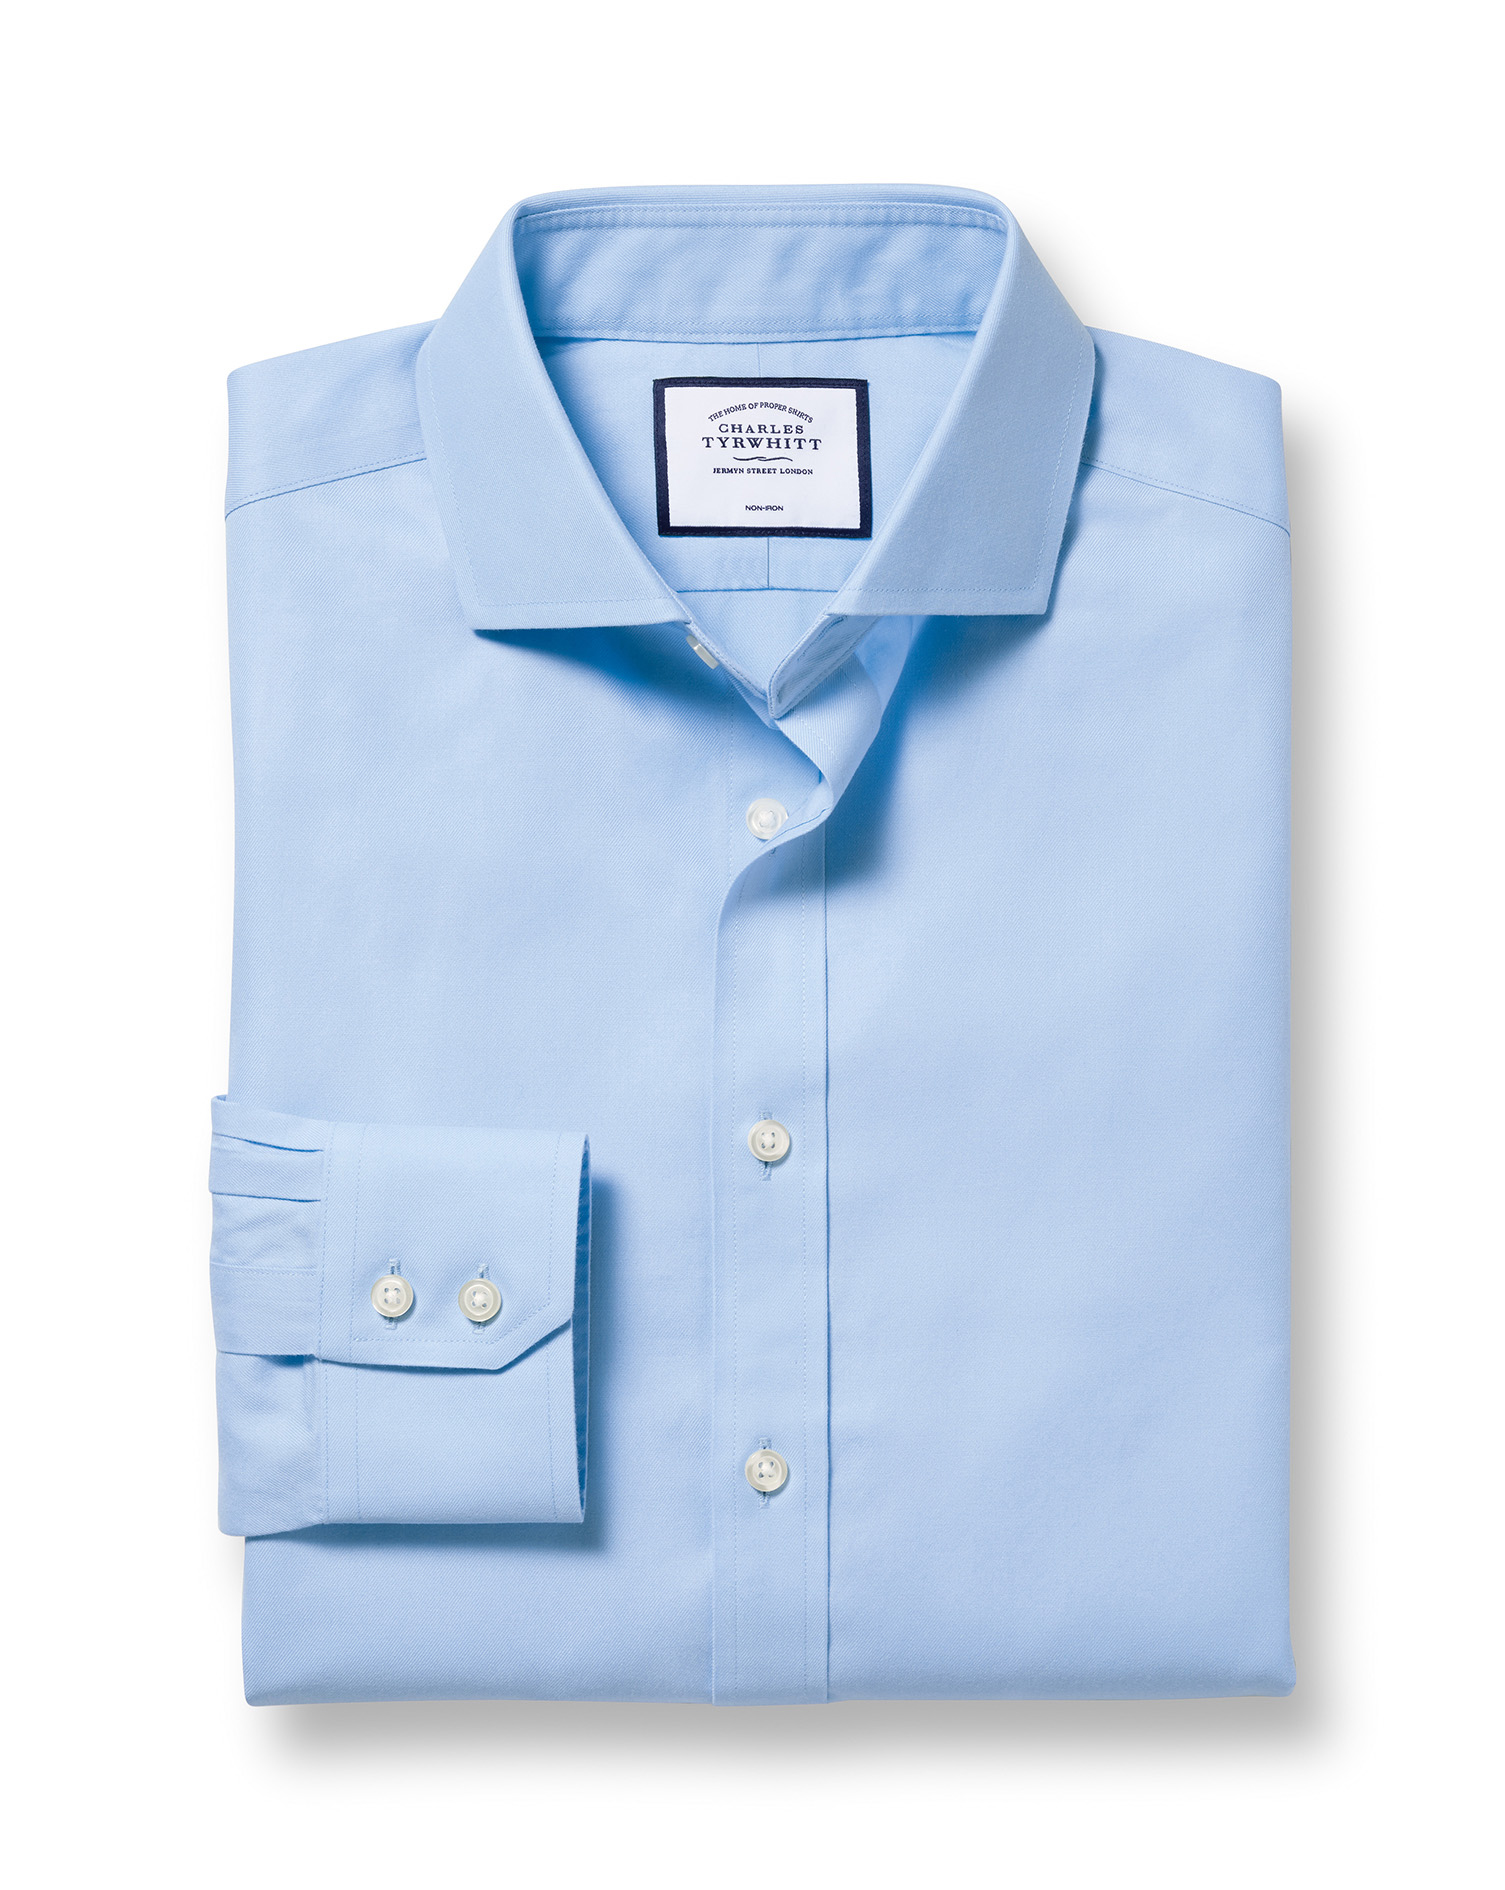 Slim Fit Cutaway Non-Iron Twill Sky Blue Cotton Formal Shirt Single Cuff Size 15.5/33 by Charles Tyr